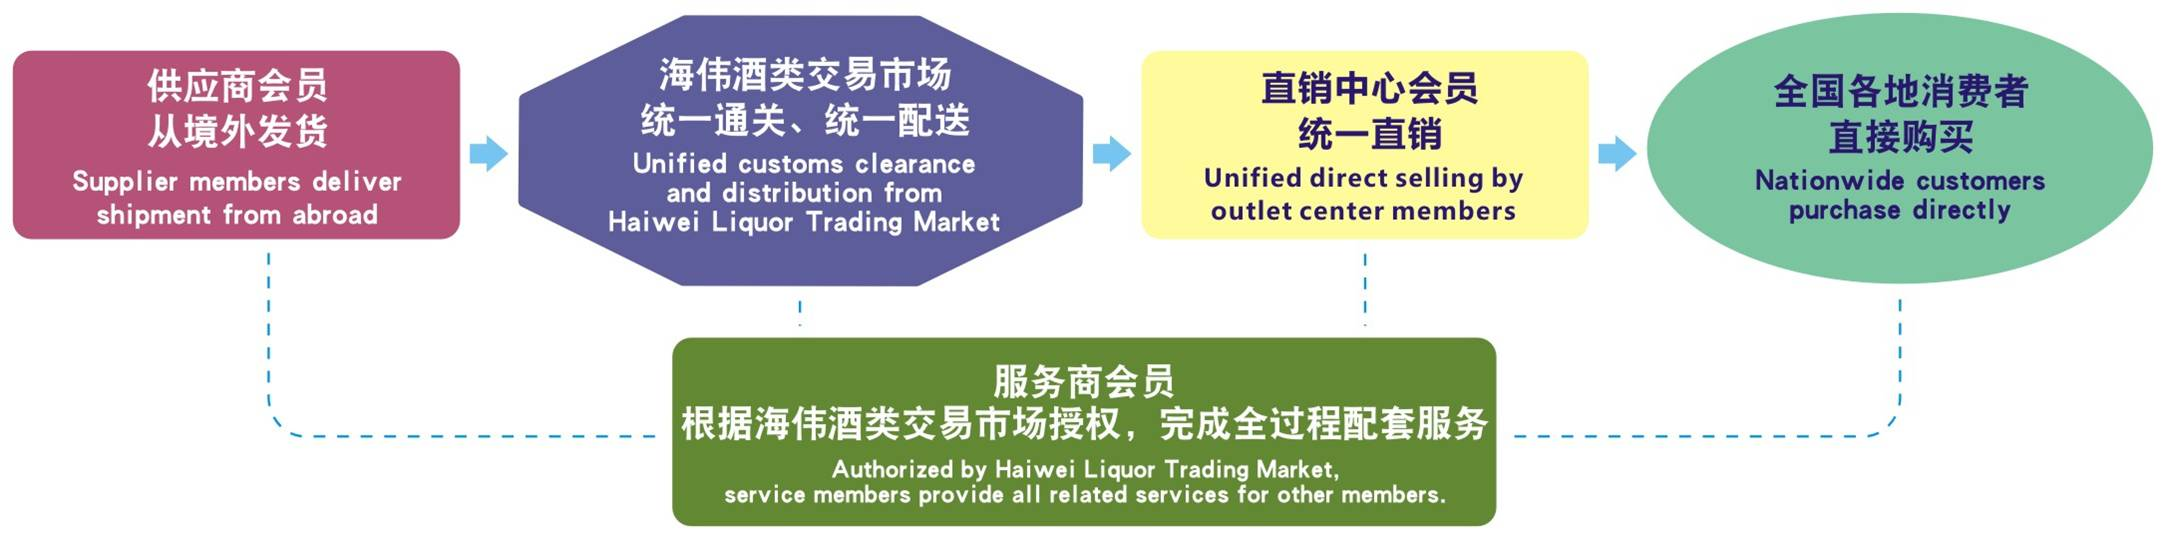 Welcome global wines to join HaiWei